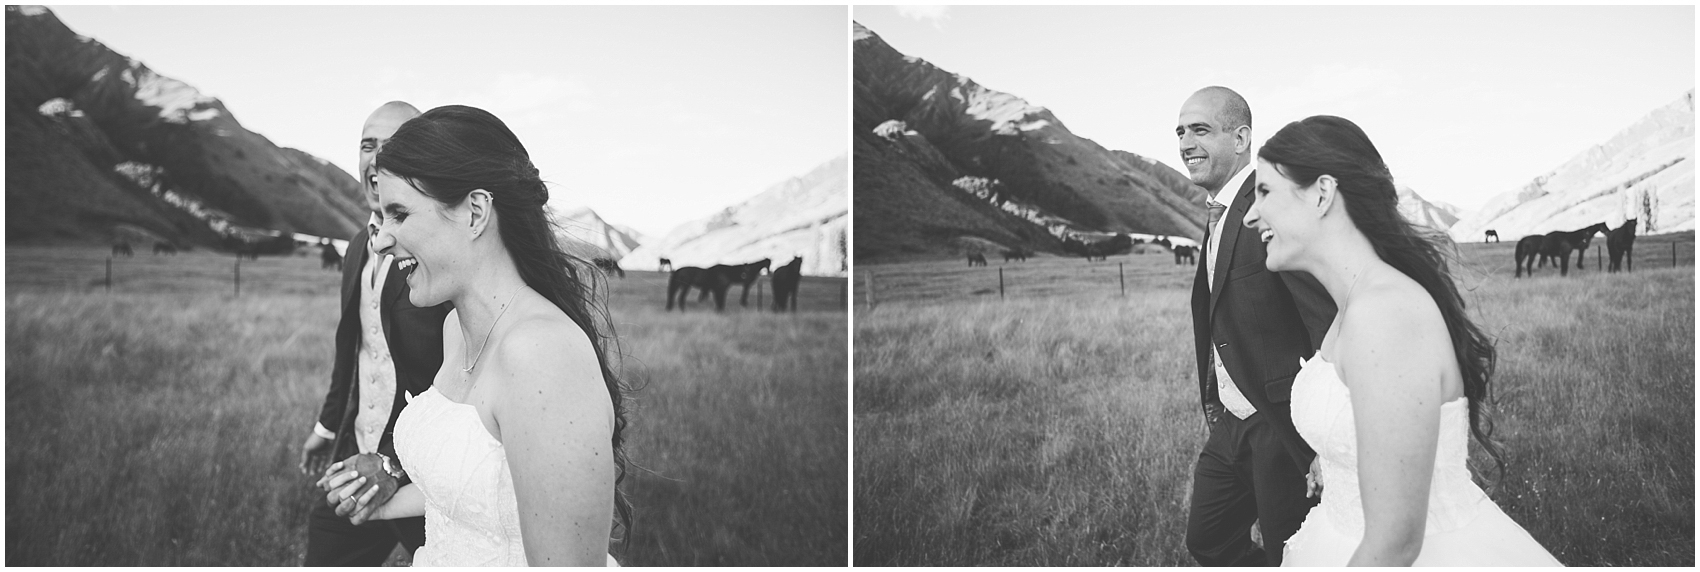 Queenstown New Zealand Wedding Photographer Bruna Fabricio Smetona Photo-0066.jpg